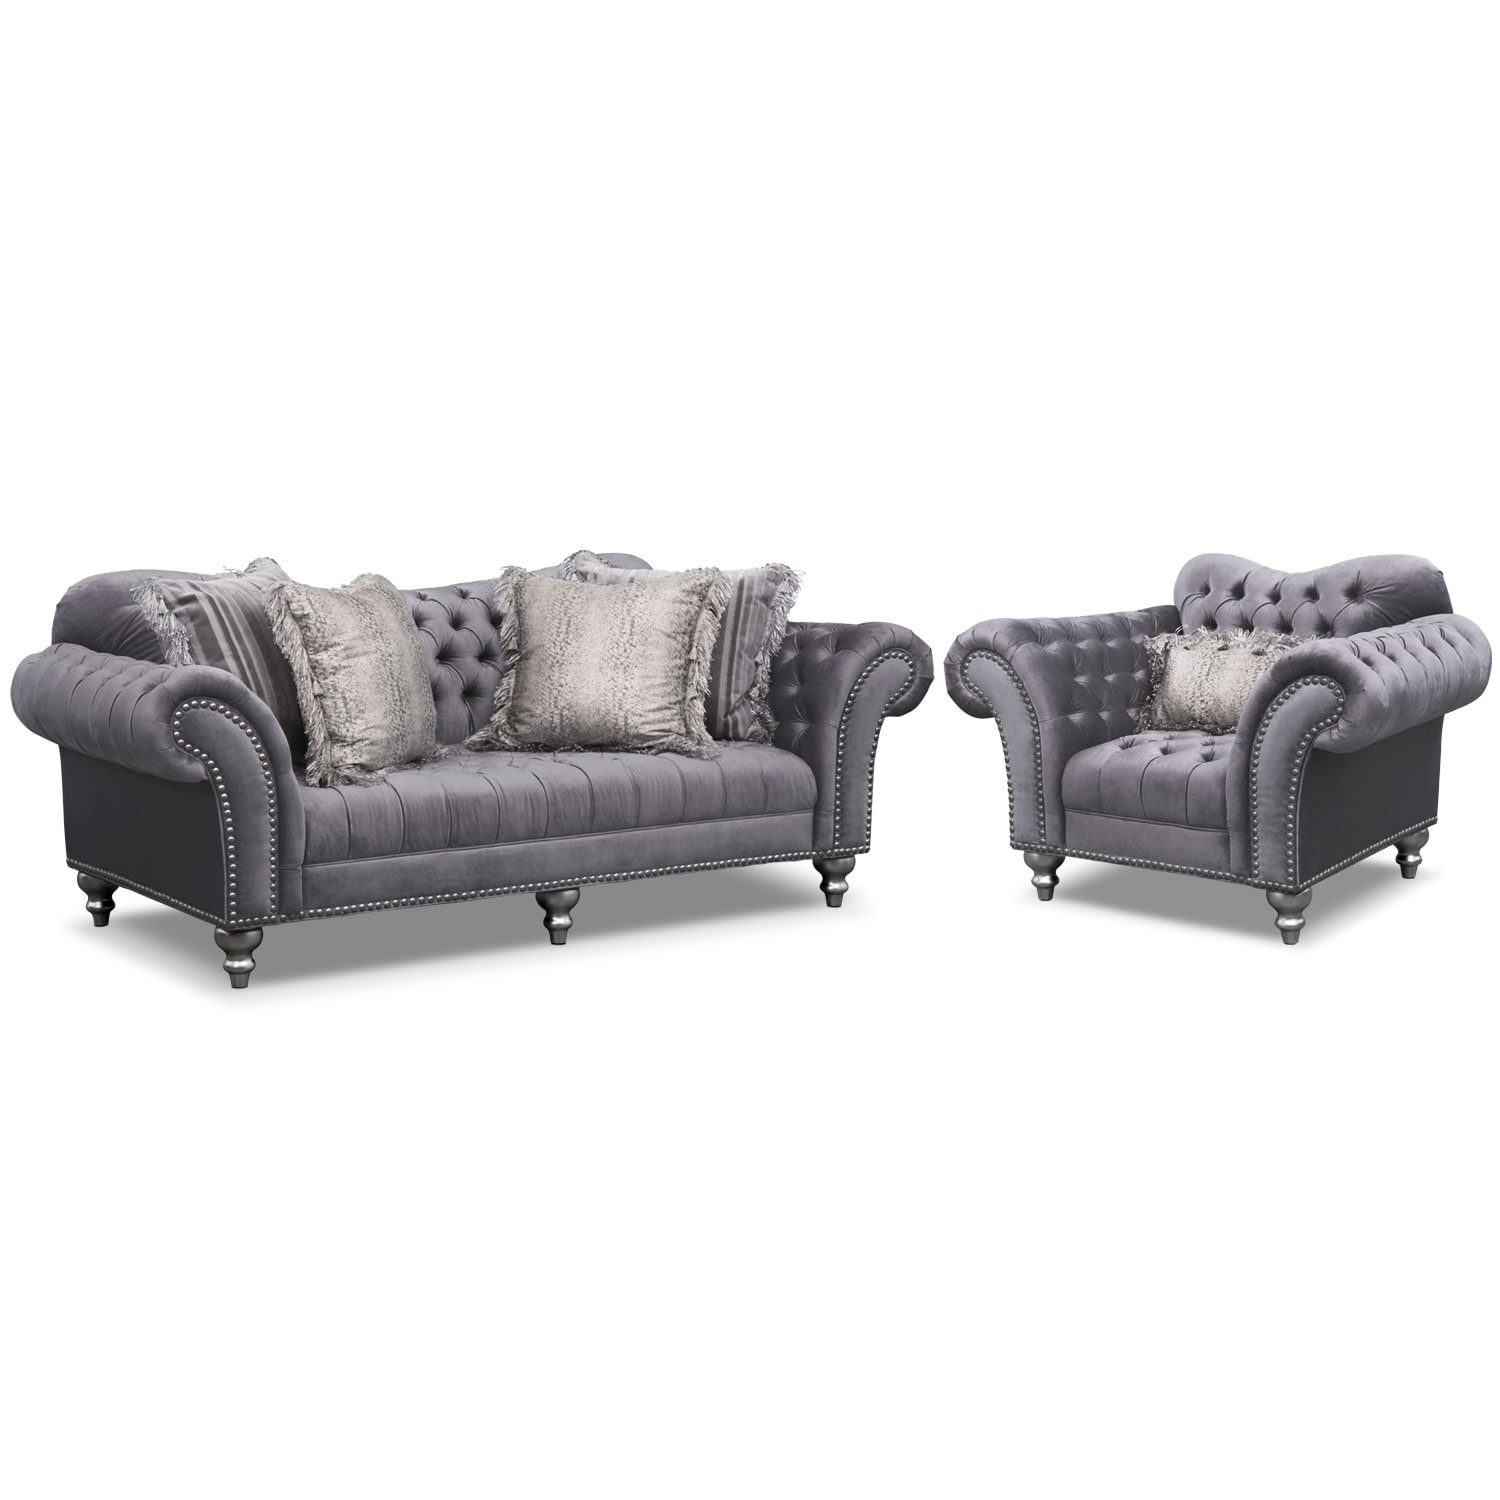 Brittney Sofa and Chair Set - Gray